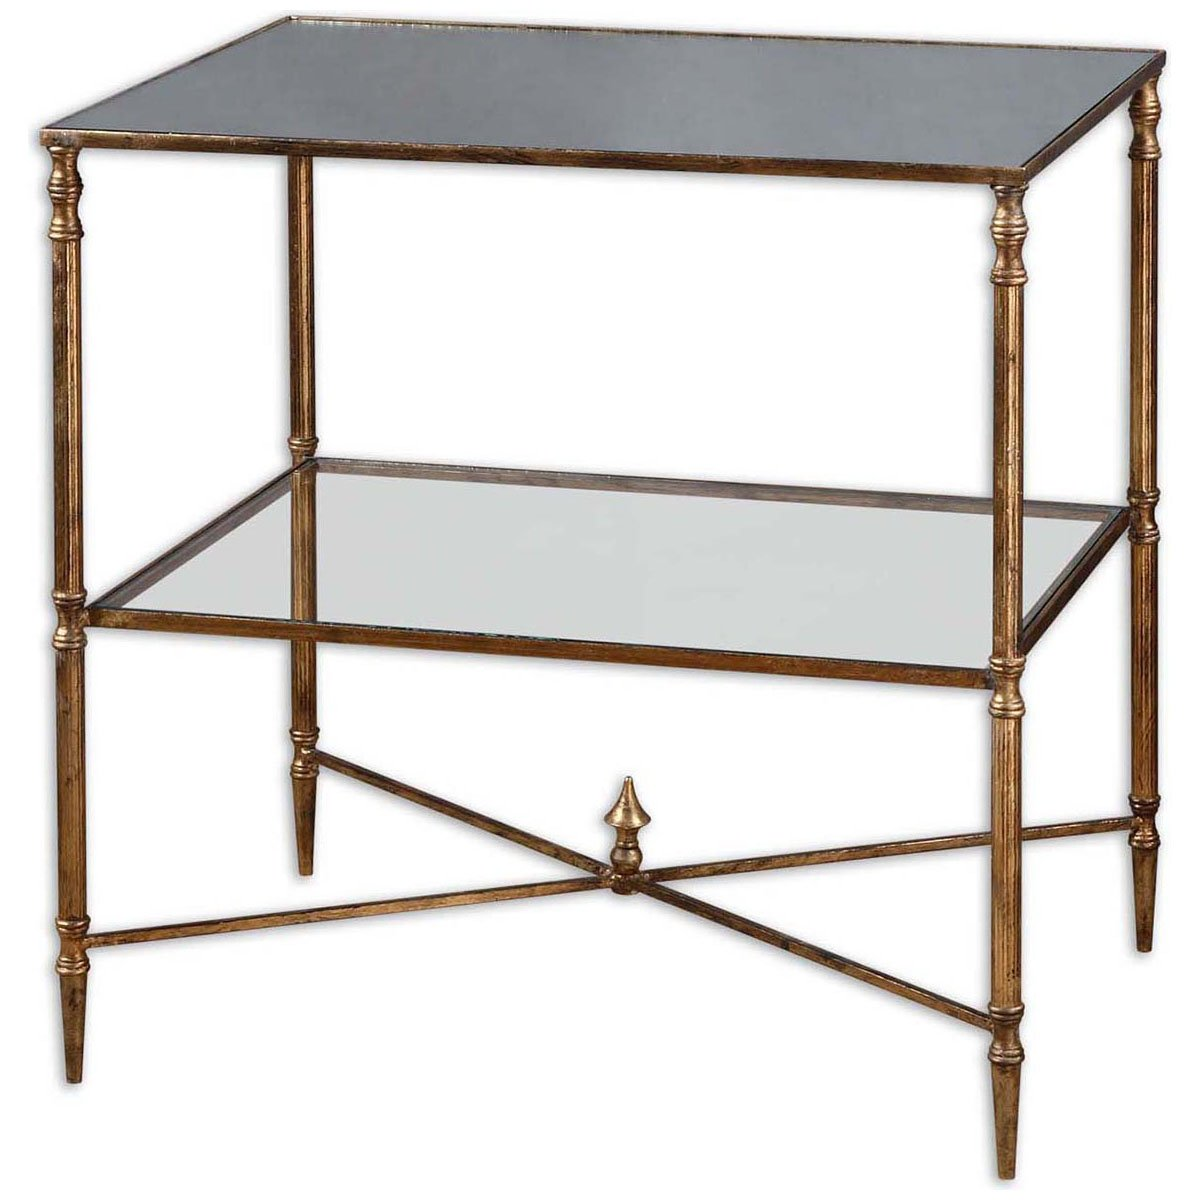 Uttermost 26120 Henzler Mirrored Glass Lamp Table by Uttermost (Image #1)